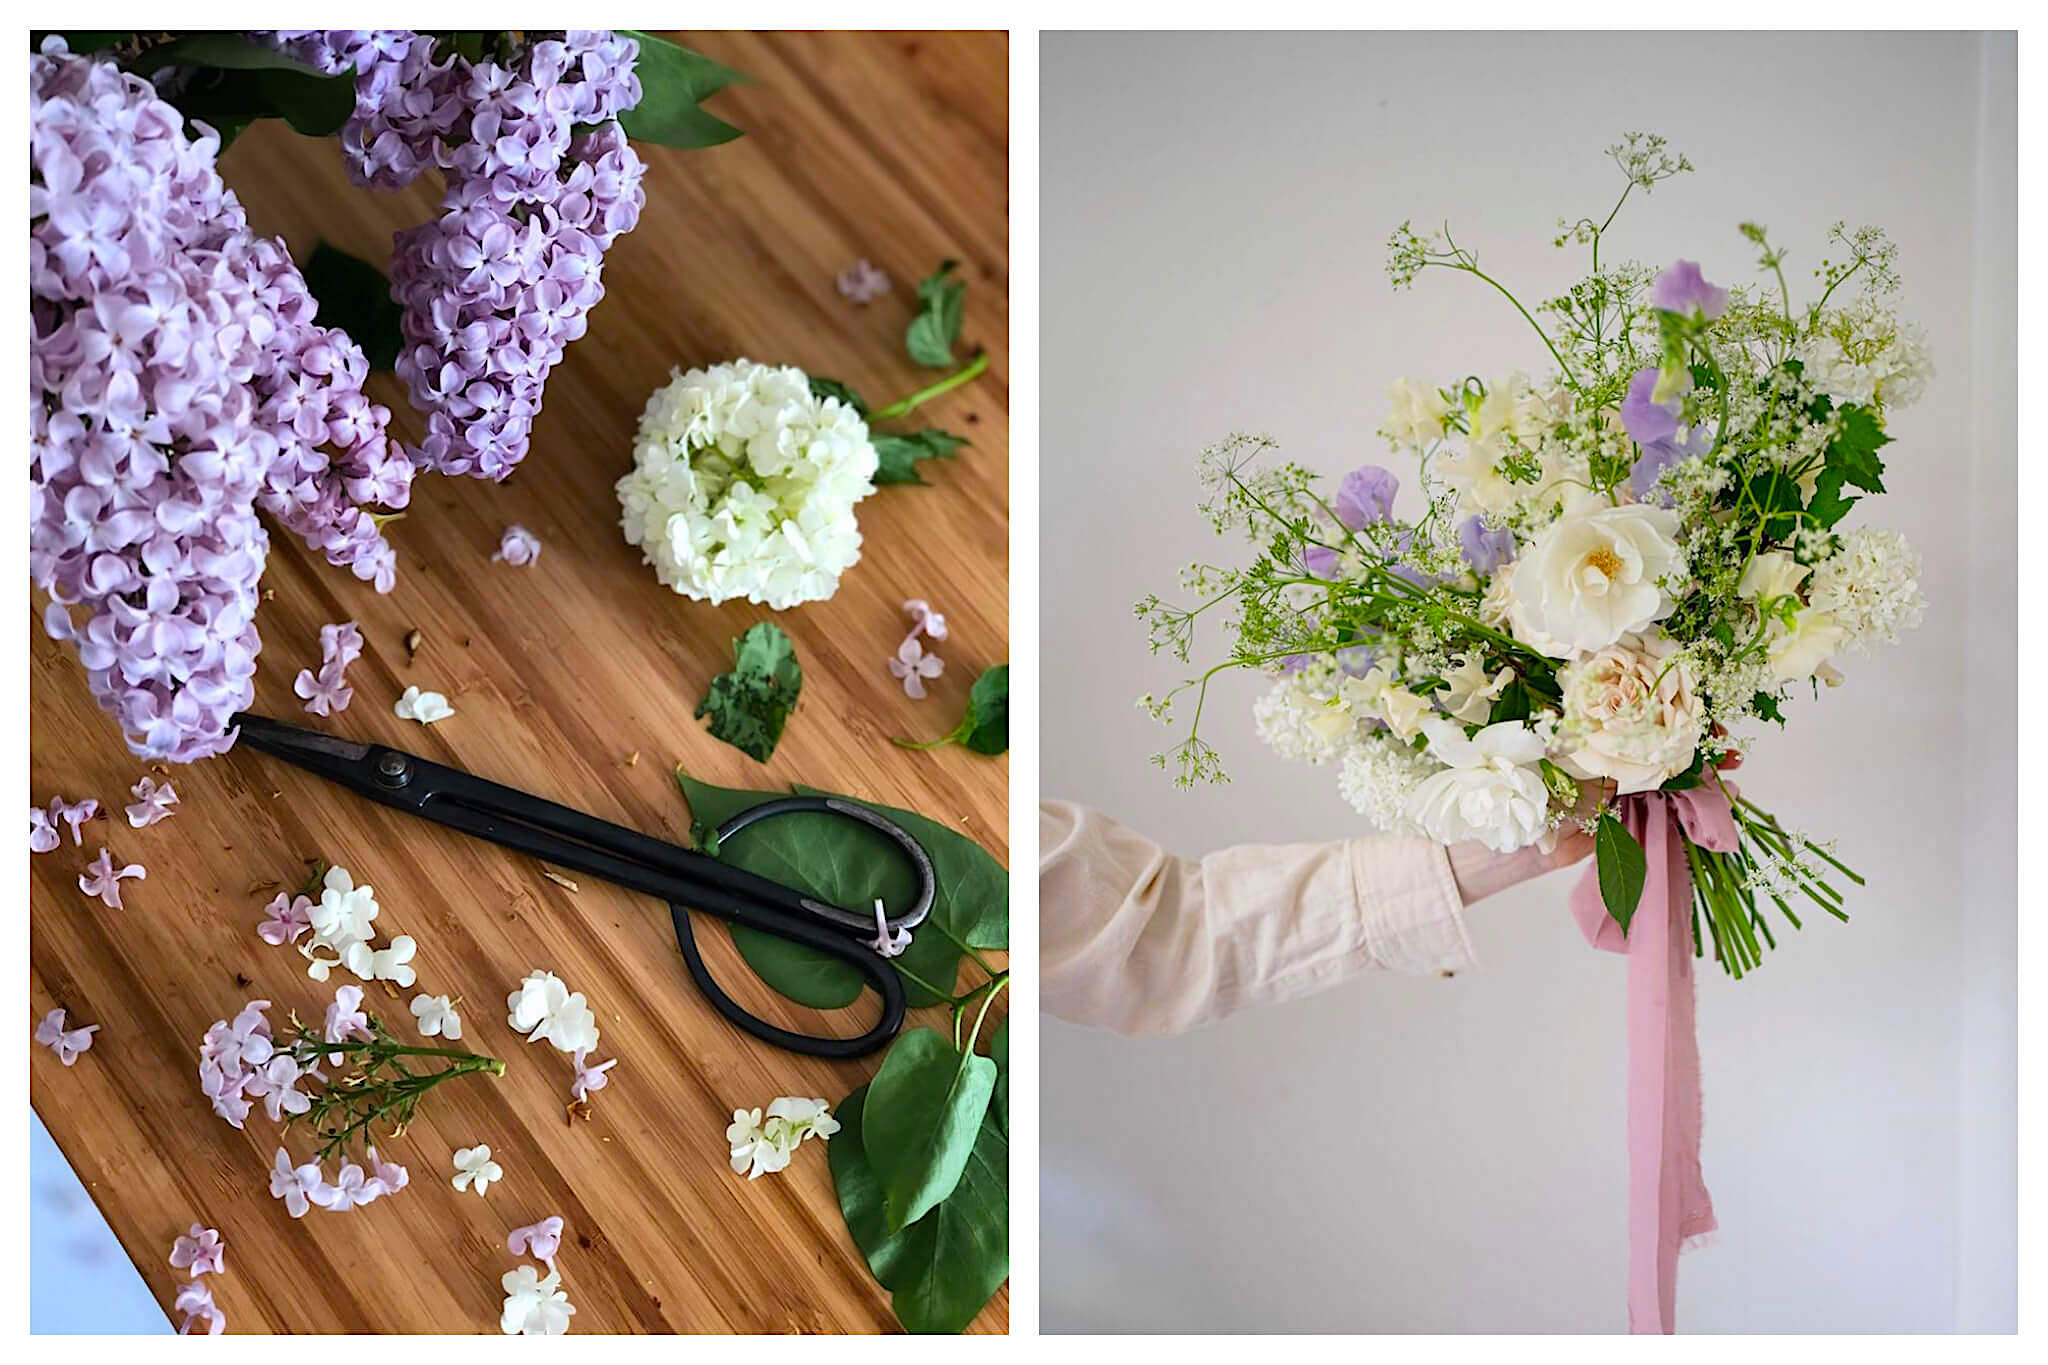 Left: A pair of scissors lays next to stems of purple and white hydrangea's ready to be made into a bouquet at PEONIES, Right: A woman holds a beautiful bouquet of white, purple and green flowers tied with a pink ribbon from PEONIES.